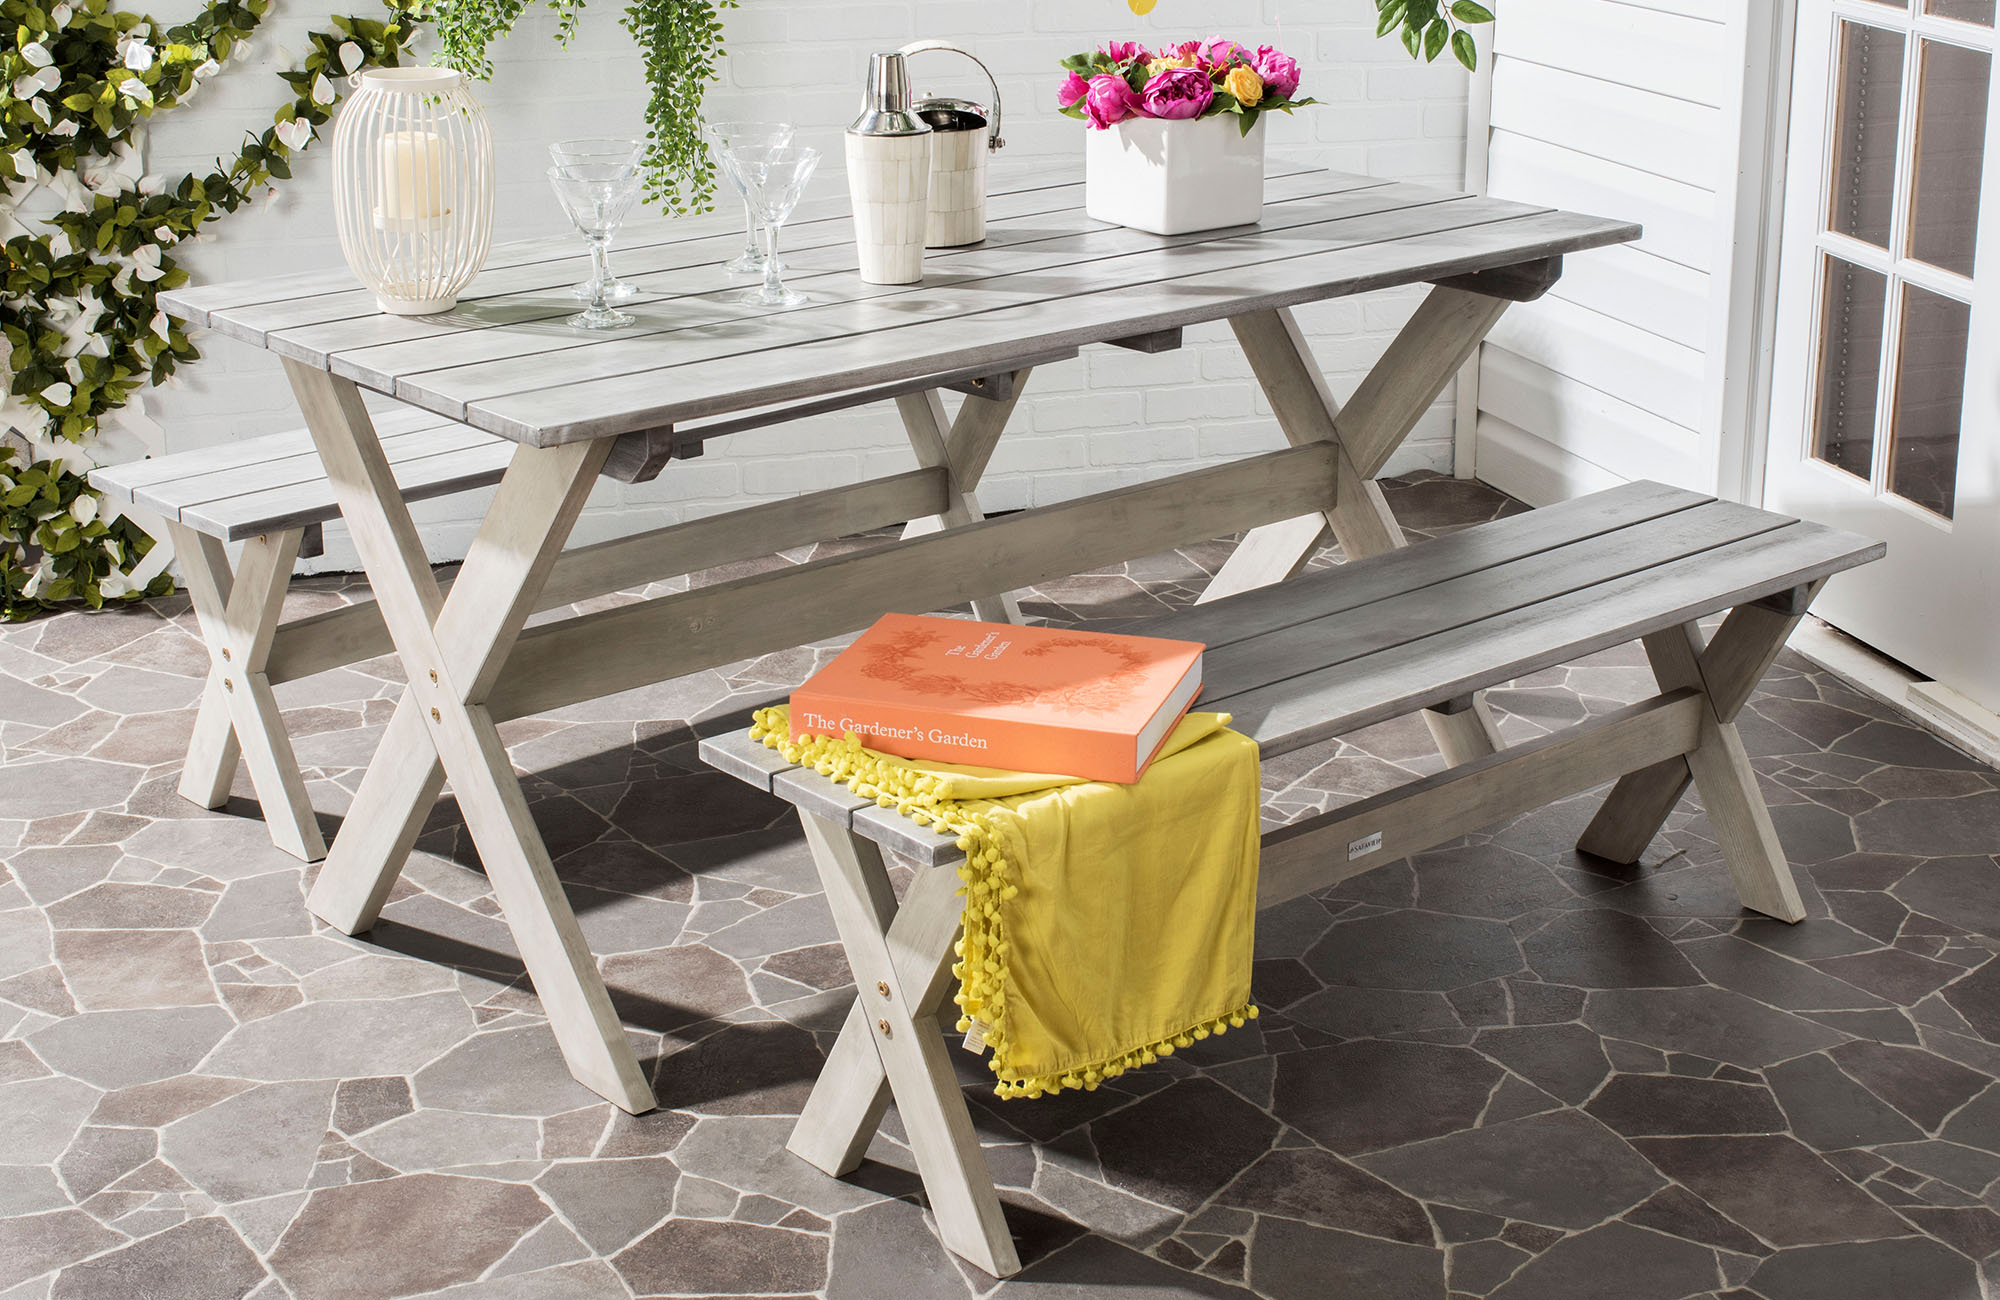 Walmart Best Patio and Porch Furniture and Decor